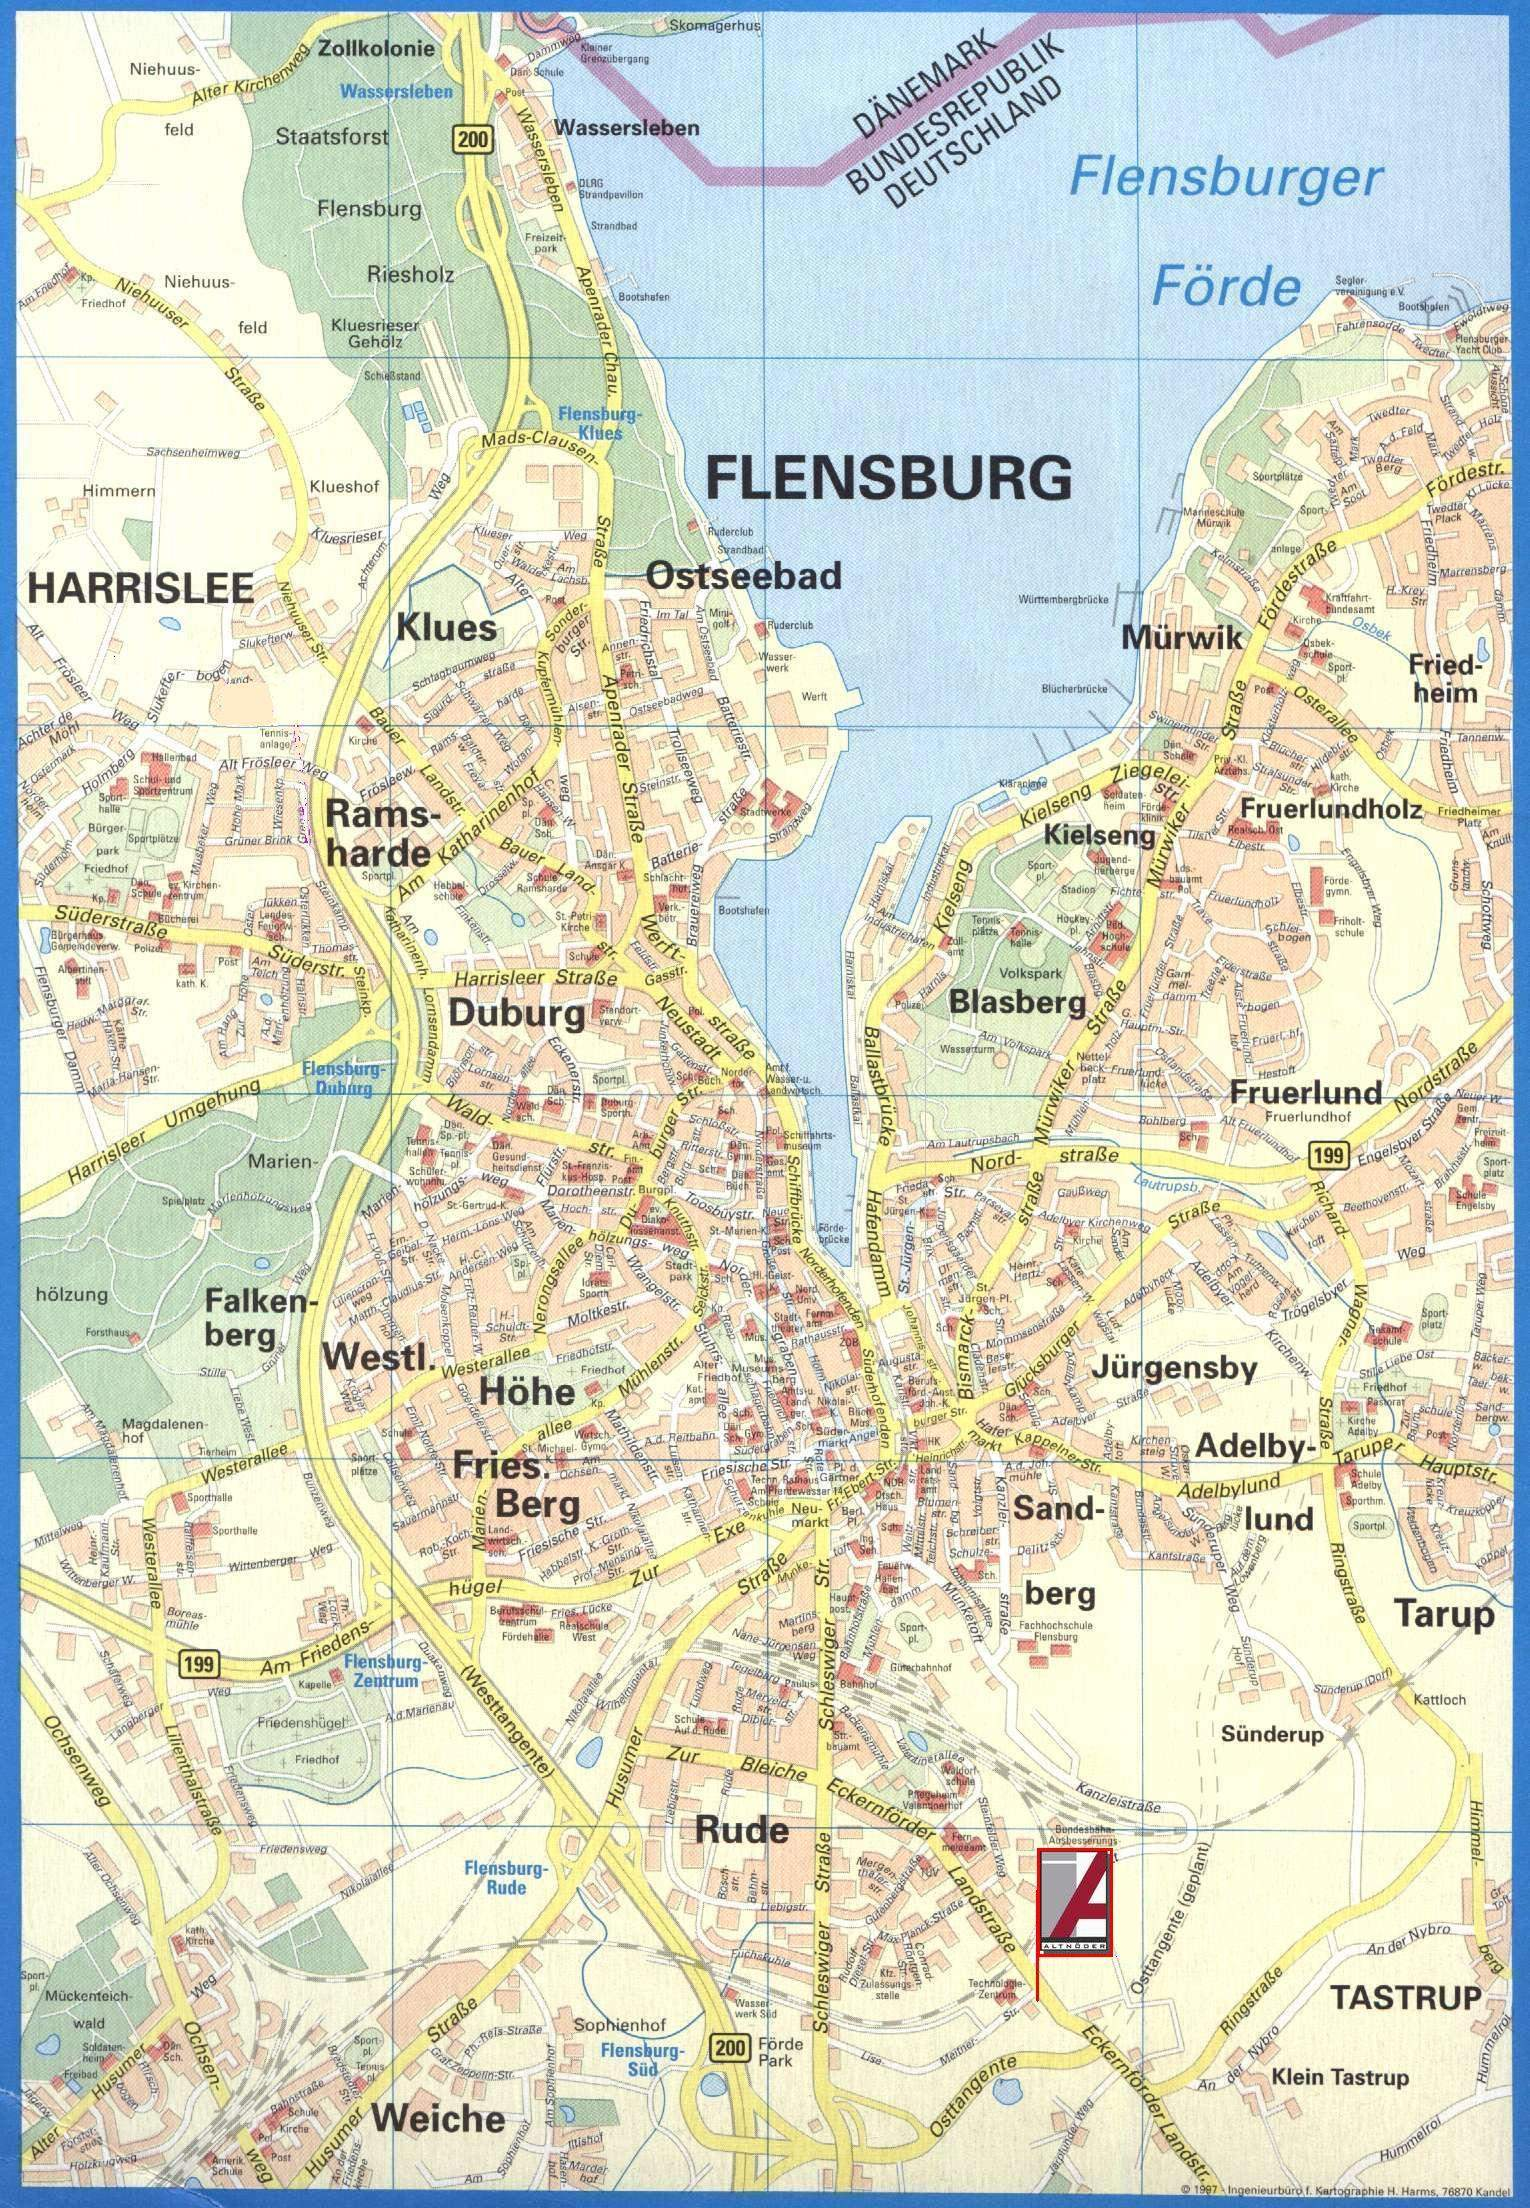 Map Of Germany To Print.Large Flensburg Maps For Free Download And Print High Resolution